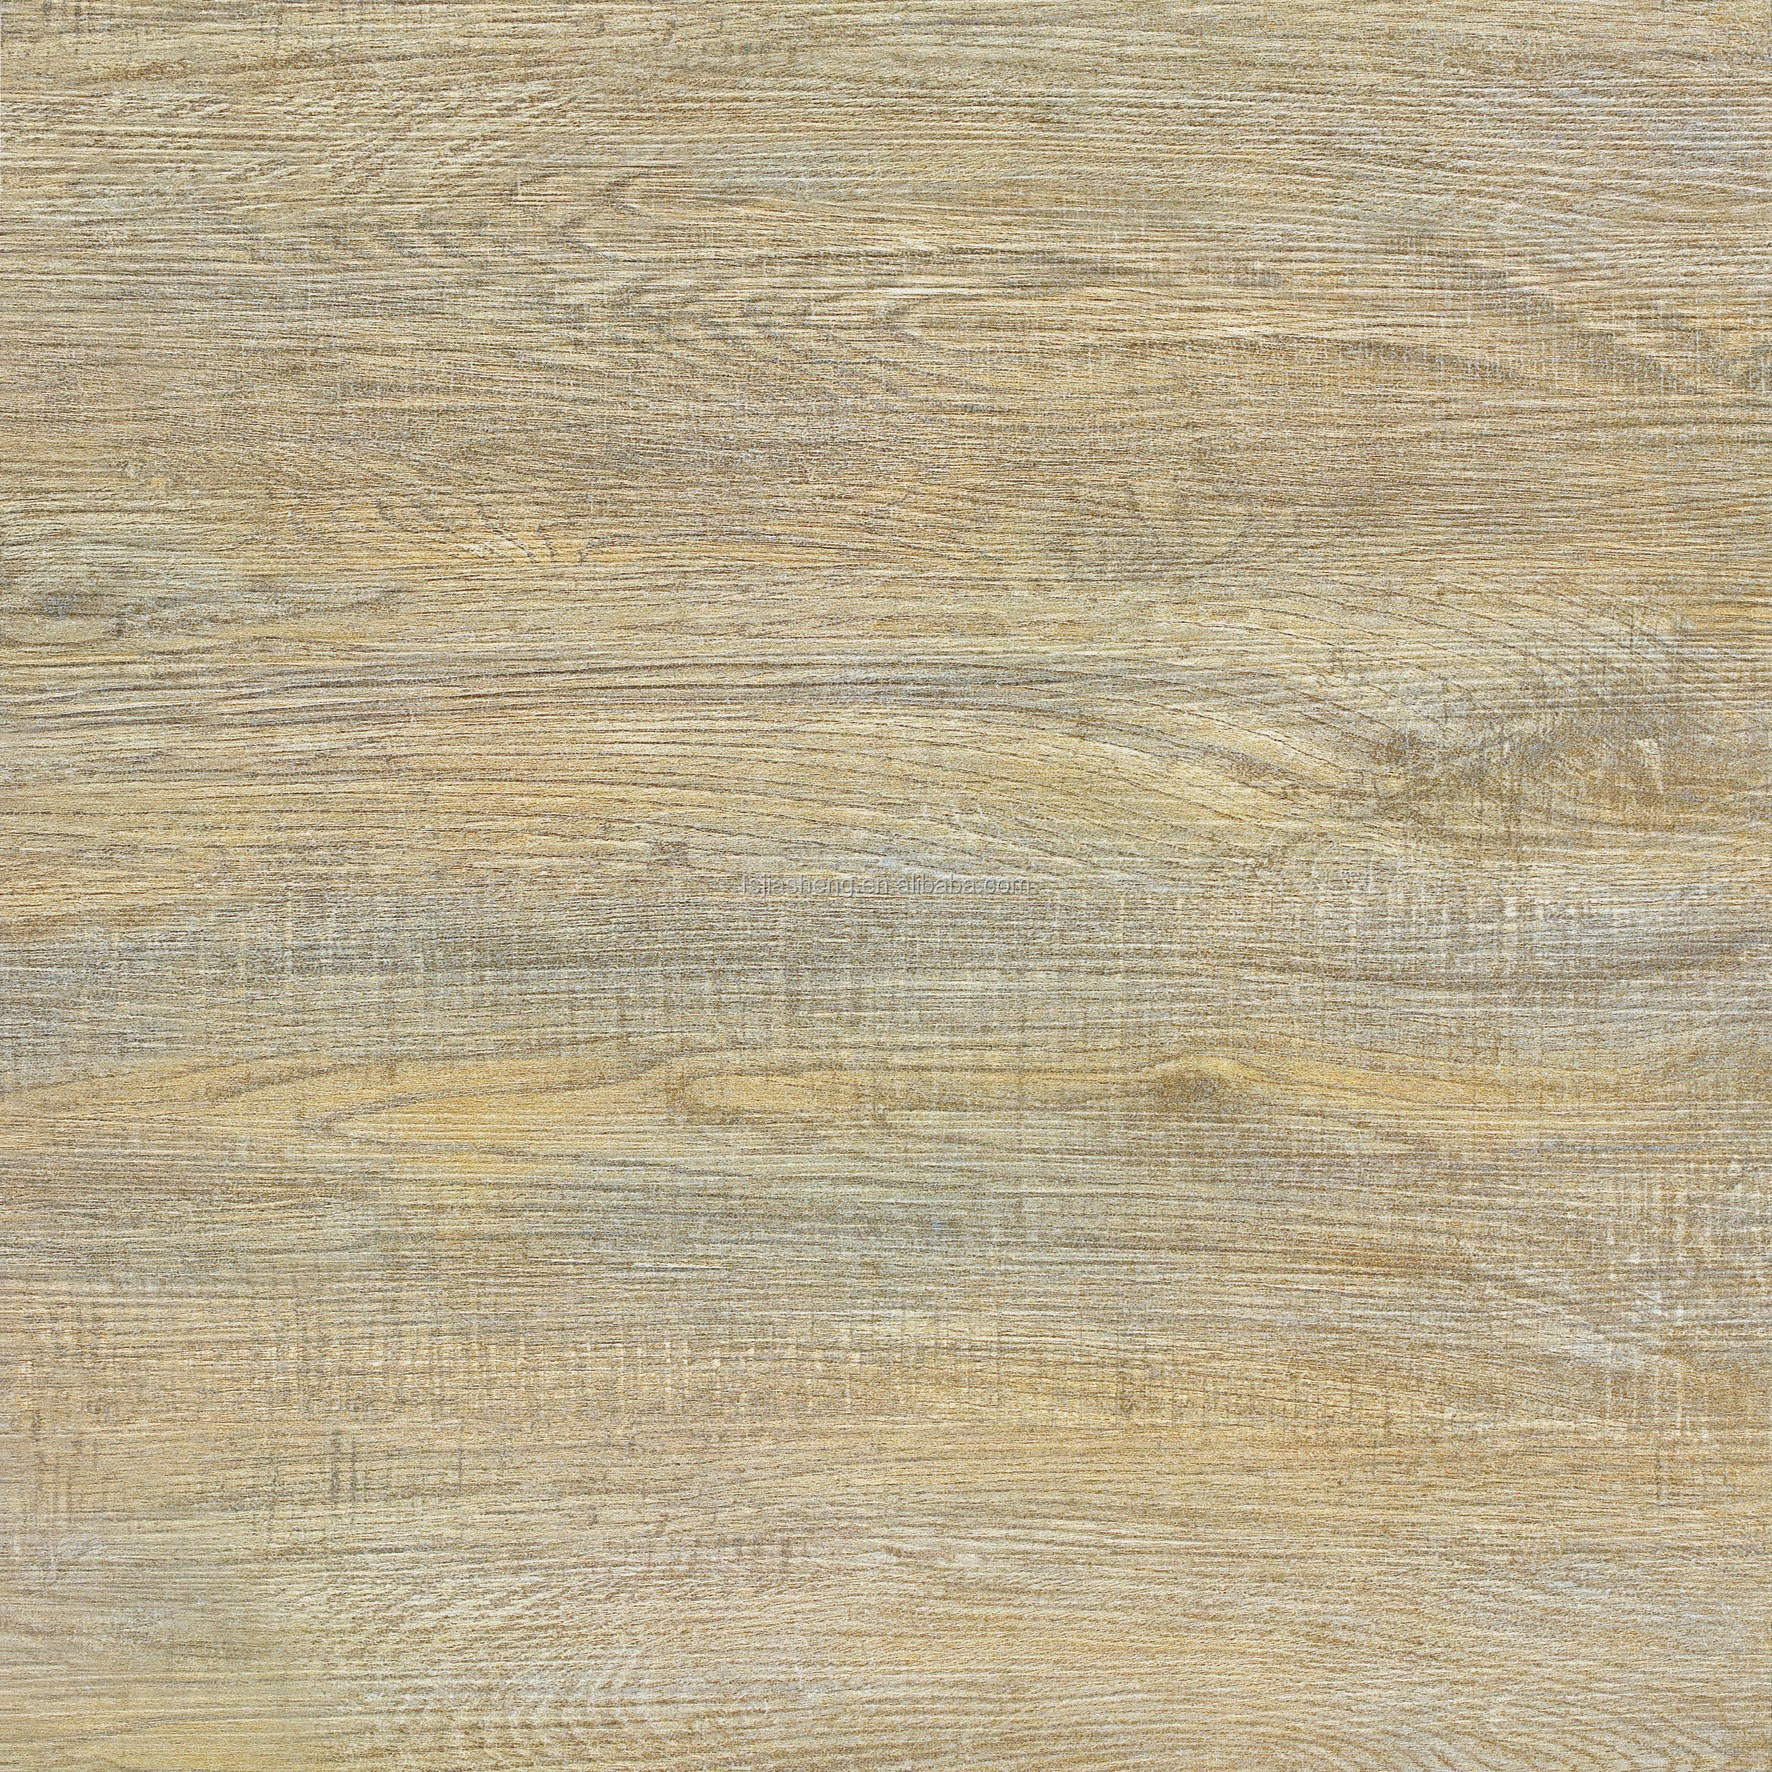 600*600mm wood look glazed  floor tile porcelain price low water absorption rate wood plank tile